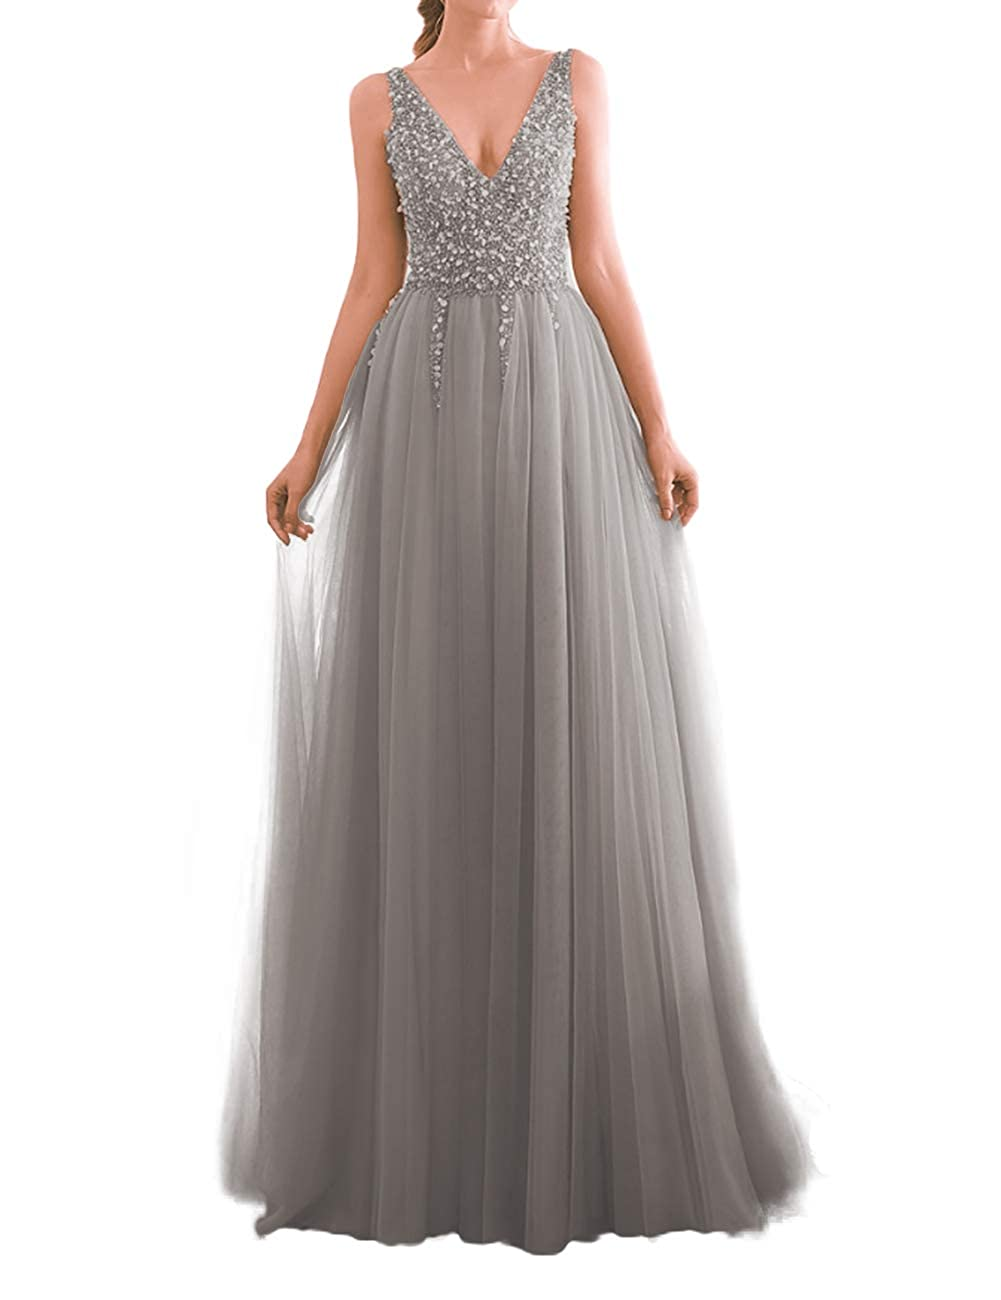 Silver JAEDEN Prom Dress Long Evening Dresses for Party Tulle V Neck Prom Dresses Evening Gowns